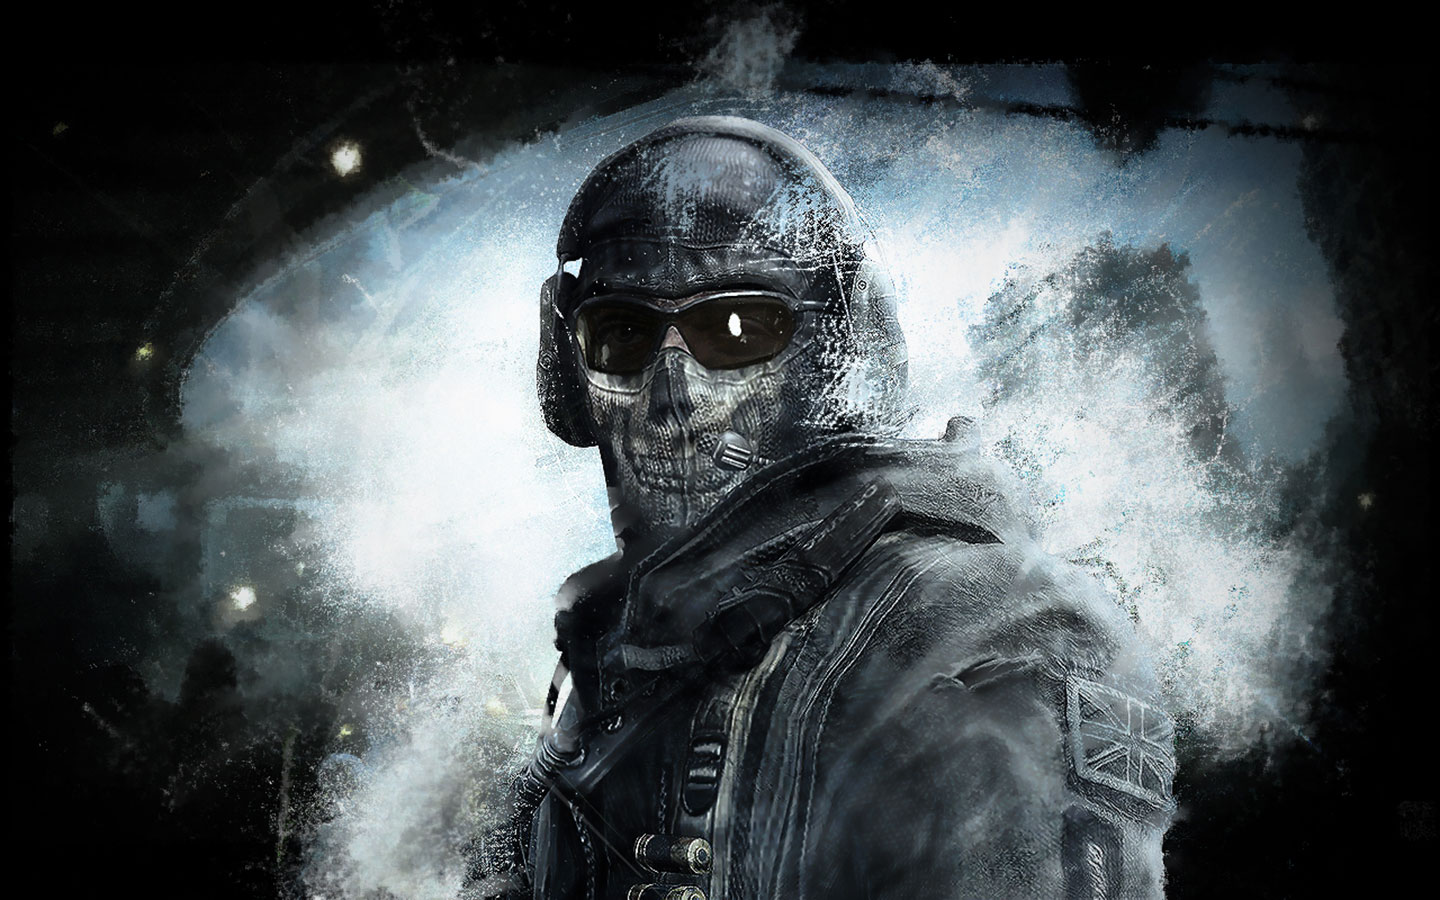 Call-Of-Duty-Modern-Warfare-2-Ghost-Widescreen-Wallpaper